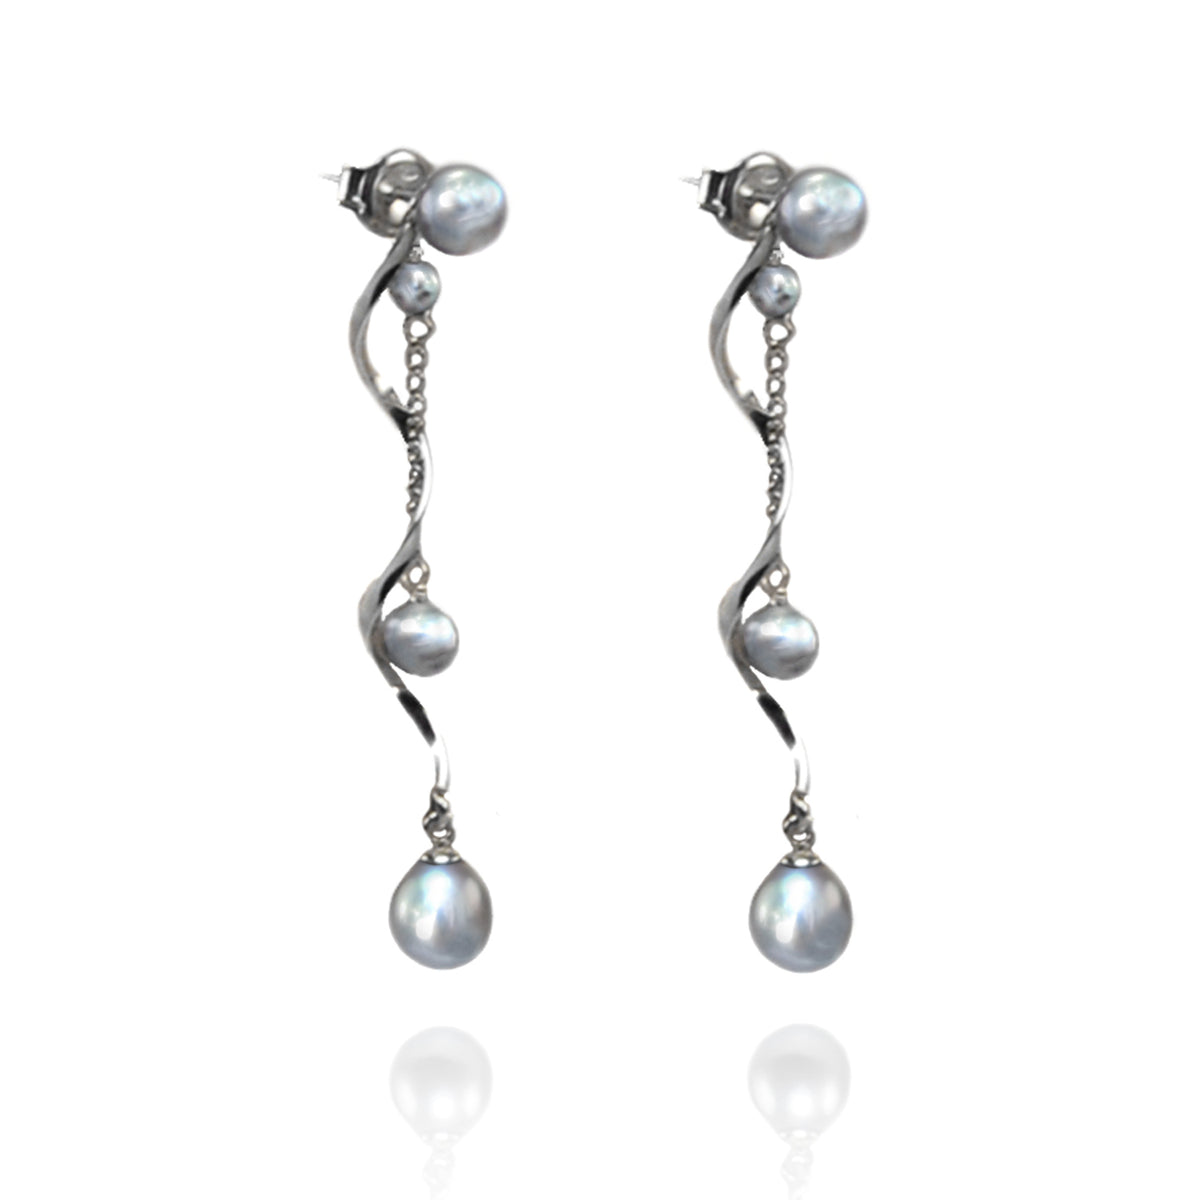 Grey Freshwater Pearl & Twisted Silver 'Build Your Own' Drop Earrings